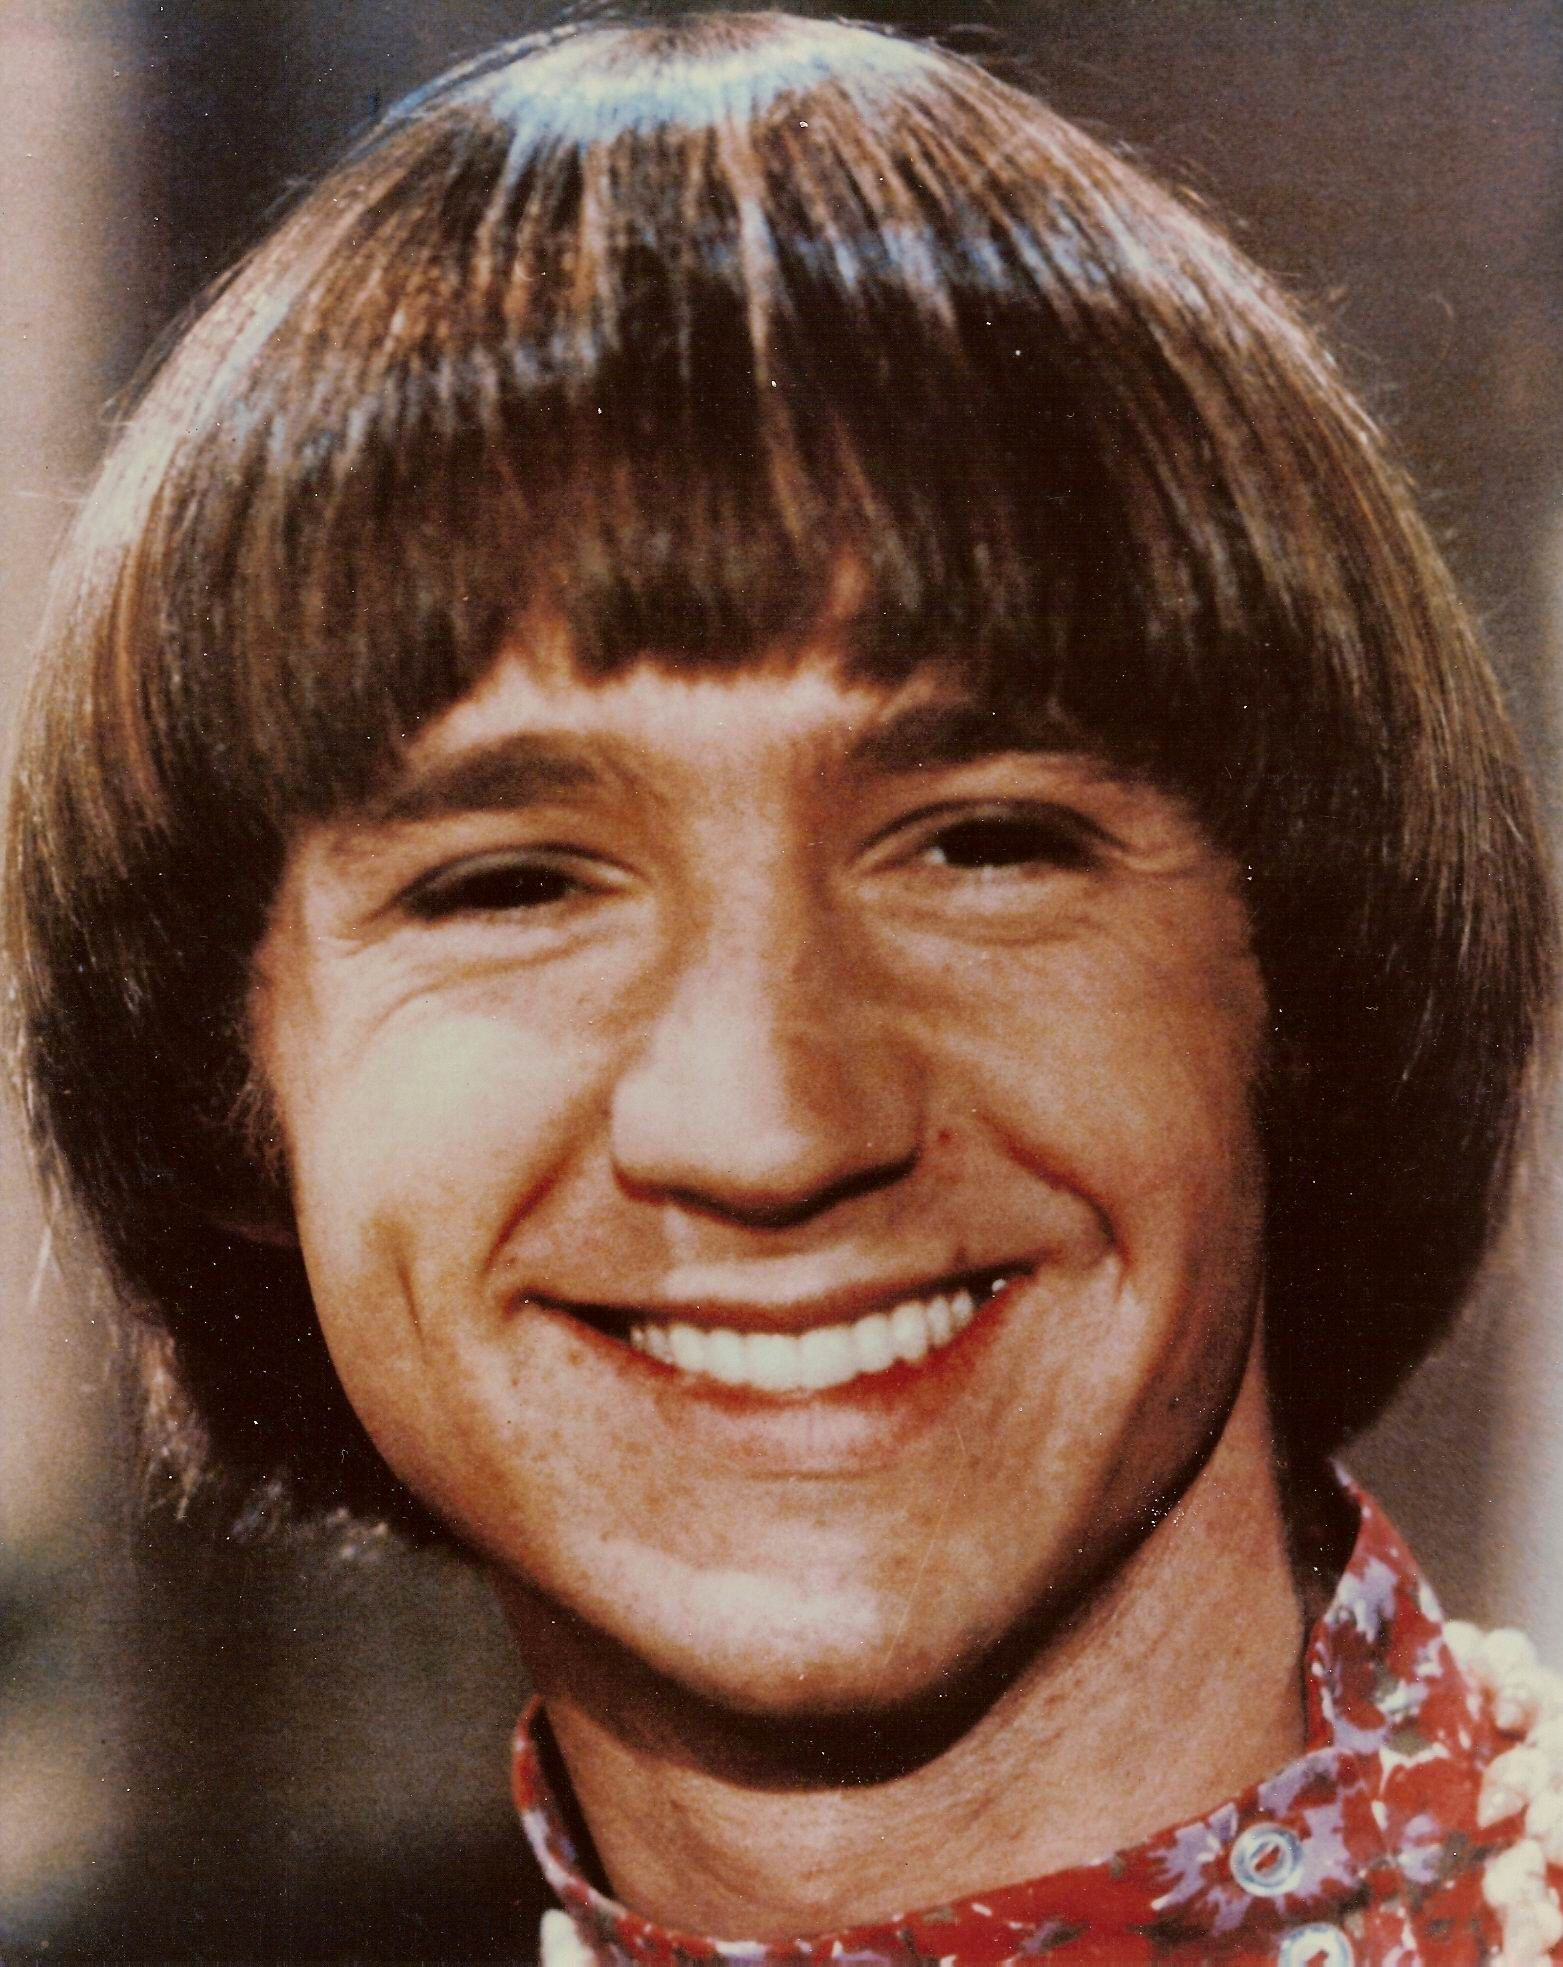 Peter Tork Peter Tork The Monkees